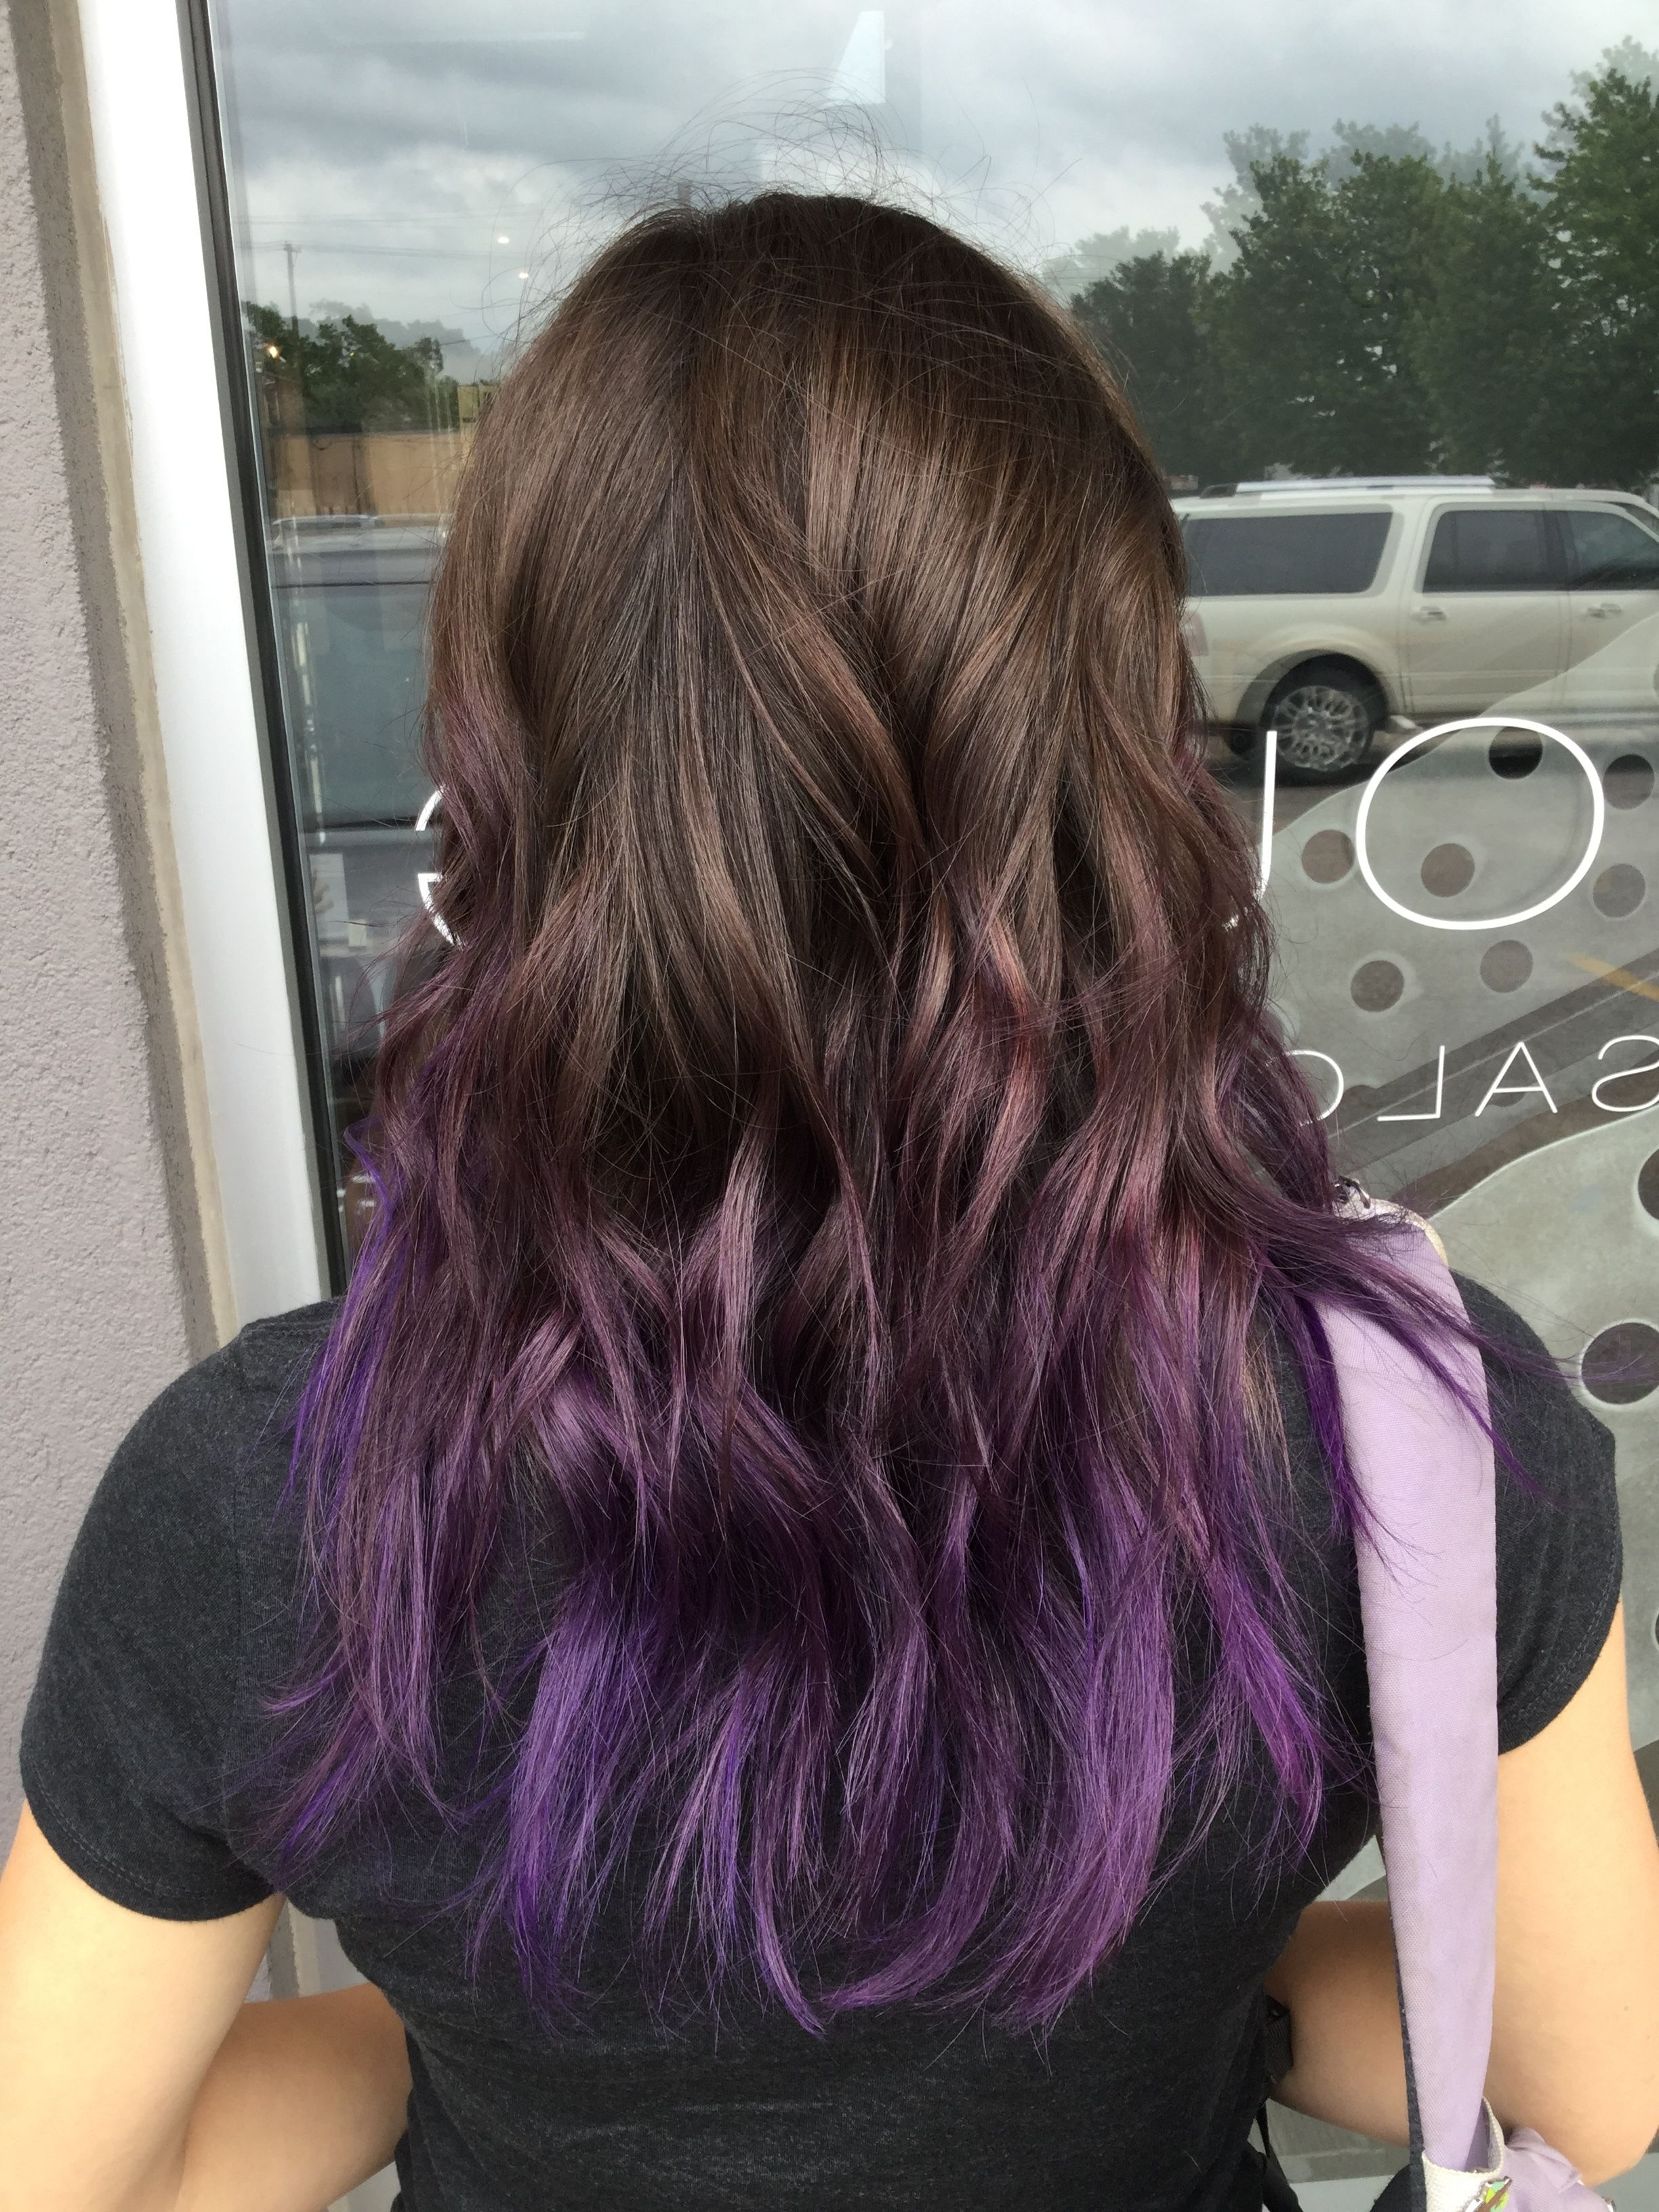 Hairstyles : Purple Hair Short Ravishing 15 Ginger Hair Dye Within Most Recently Released Ravishing Smoky Purple Ombre Hairstyles (View 7 of 20)